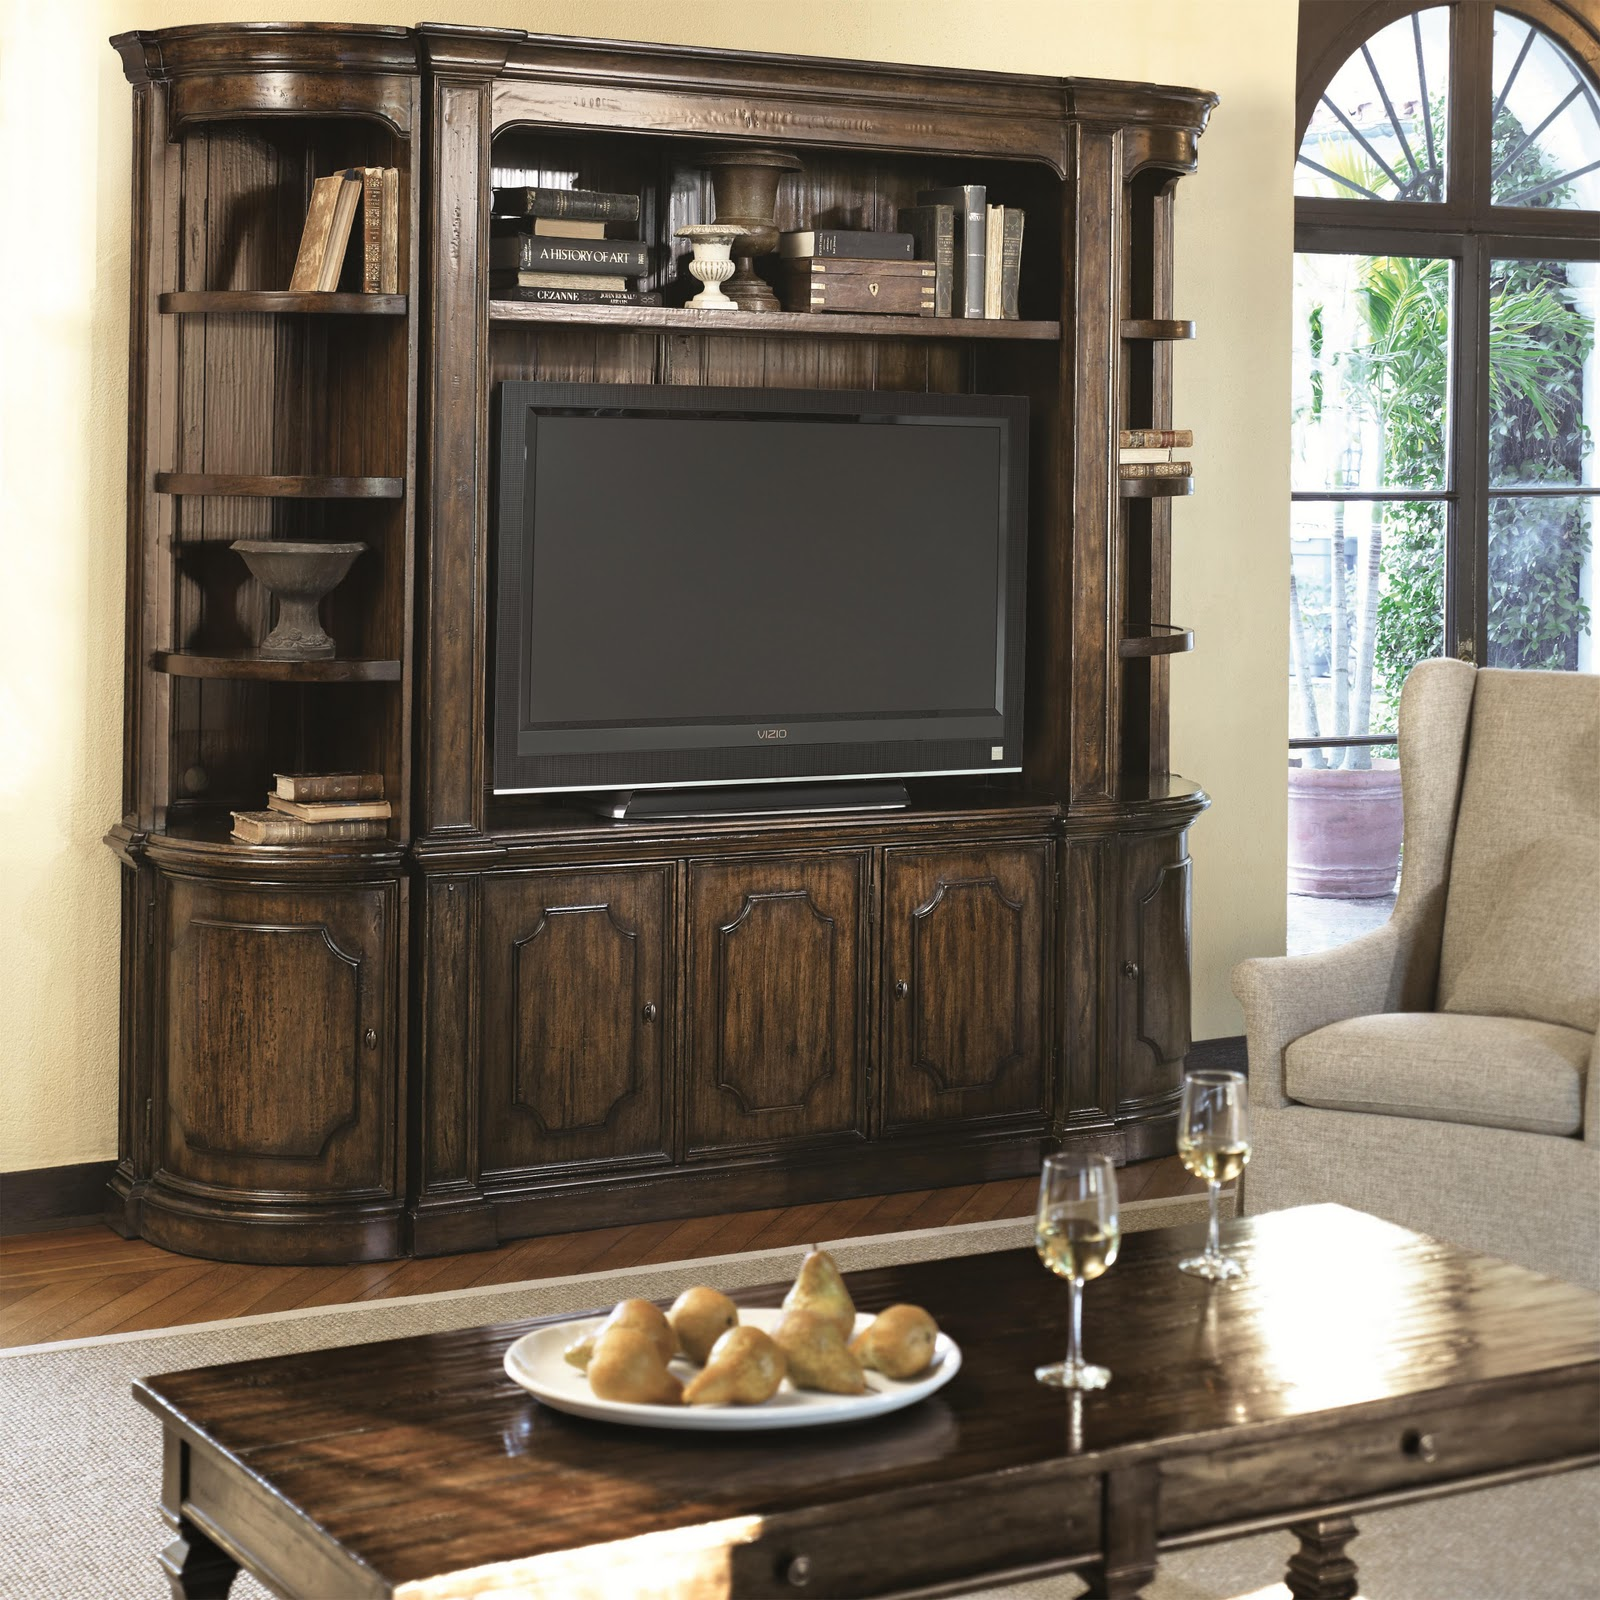 Wholesale Furniture Com: Knoxville Wholesale Furniture: Artisan Estate By Bernhardt